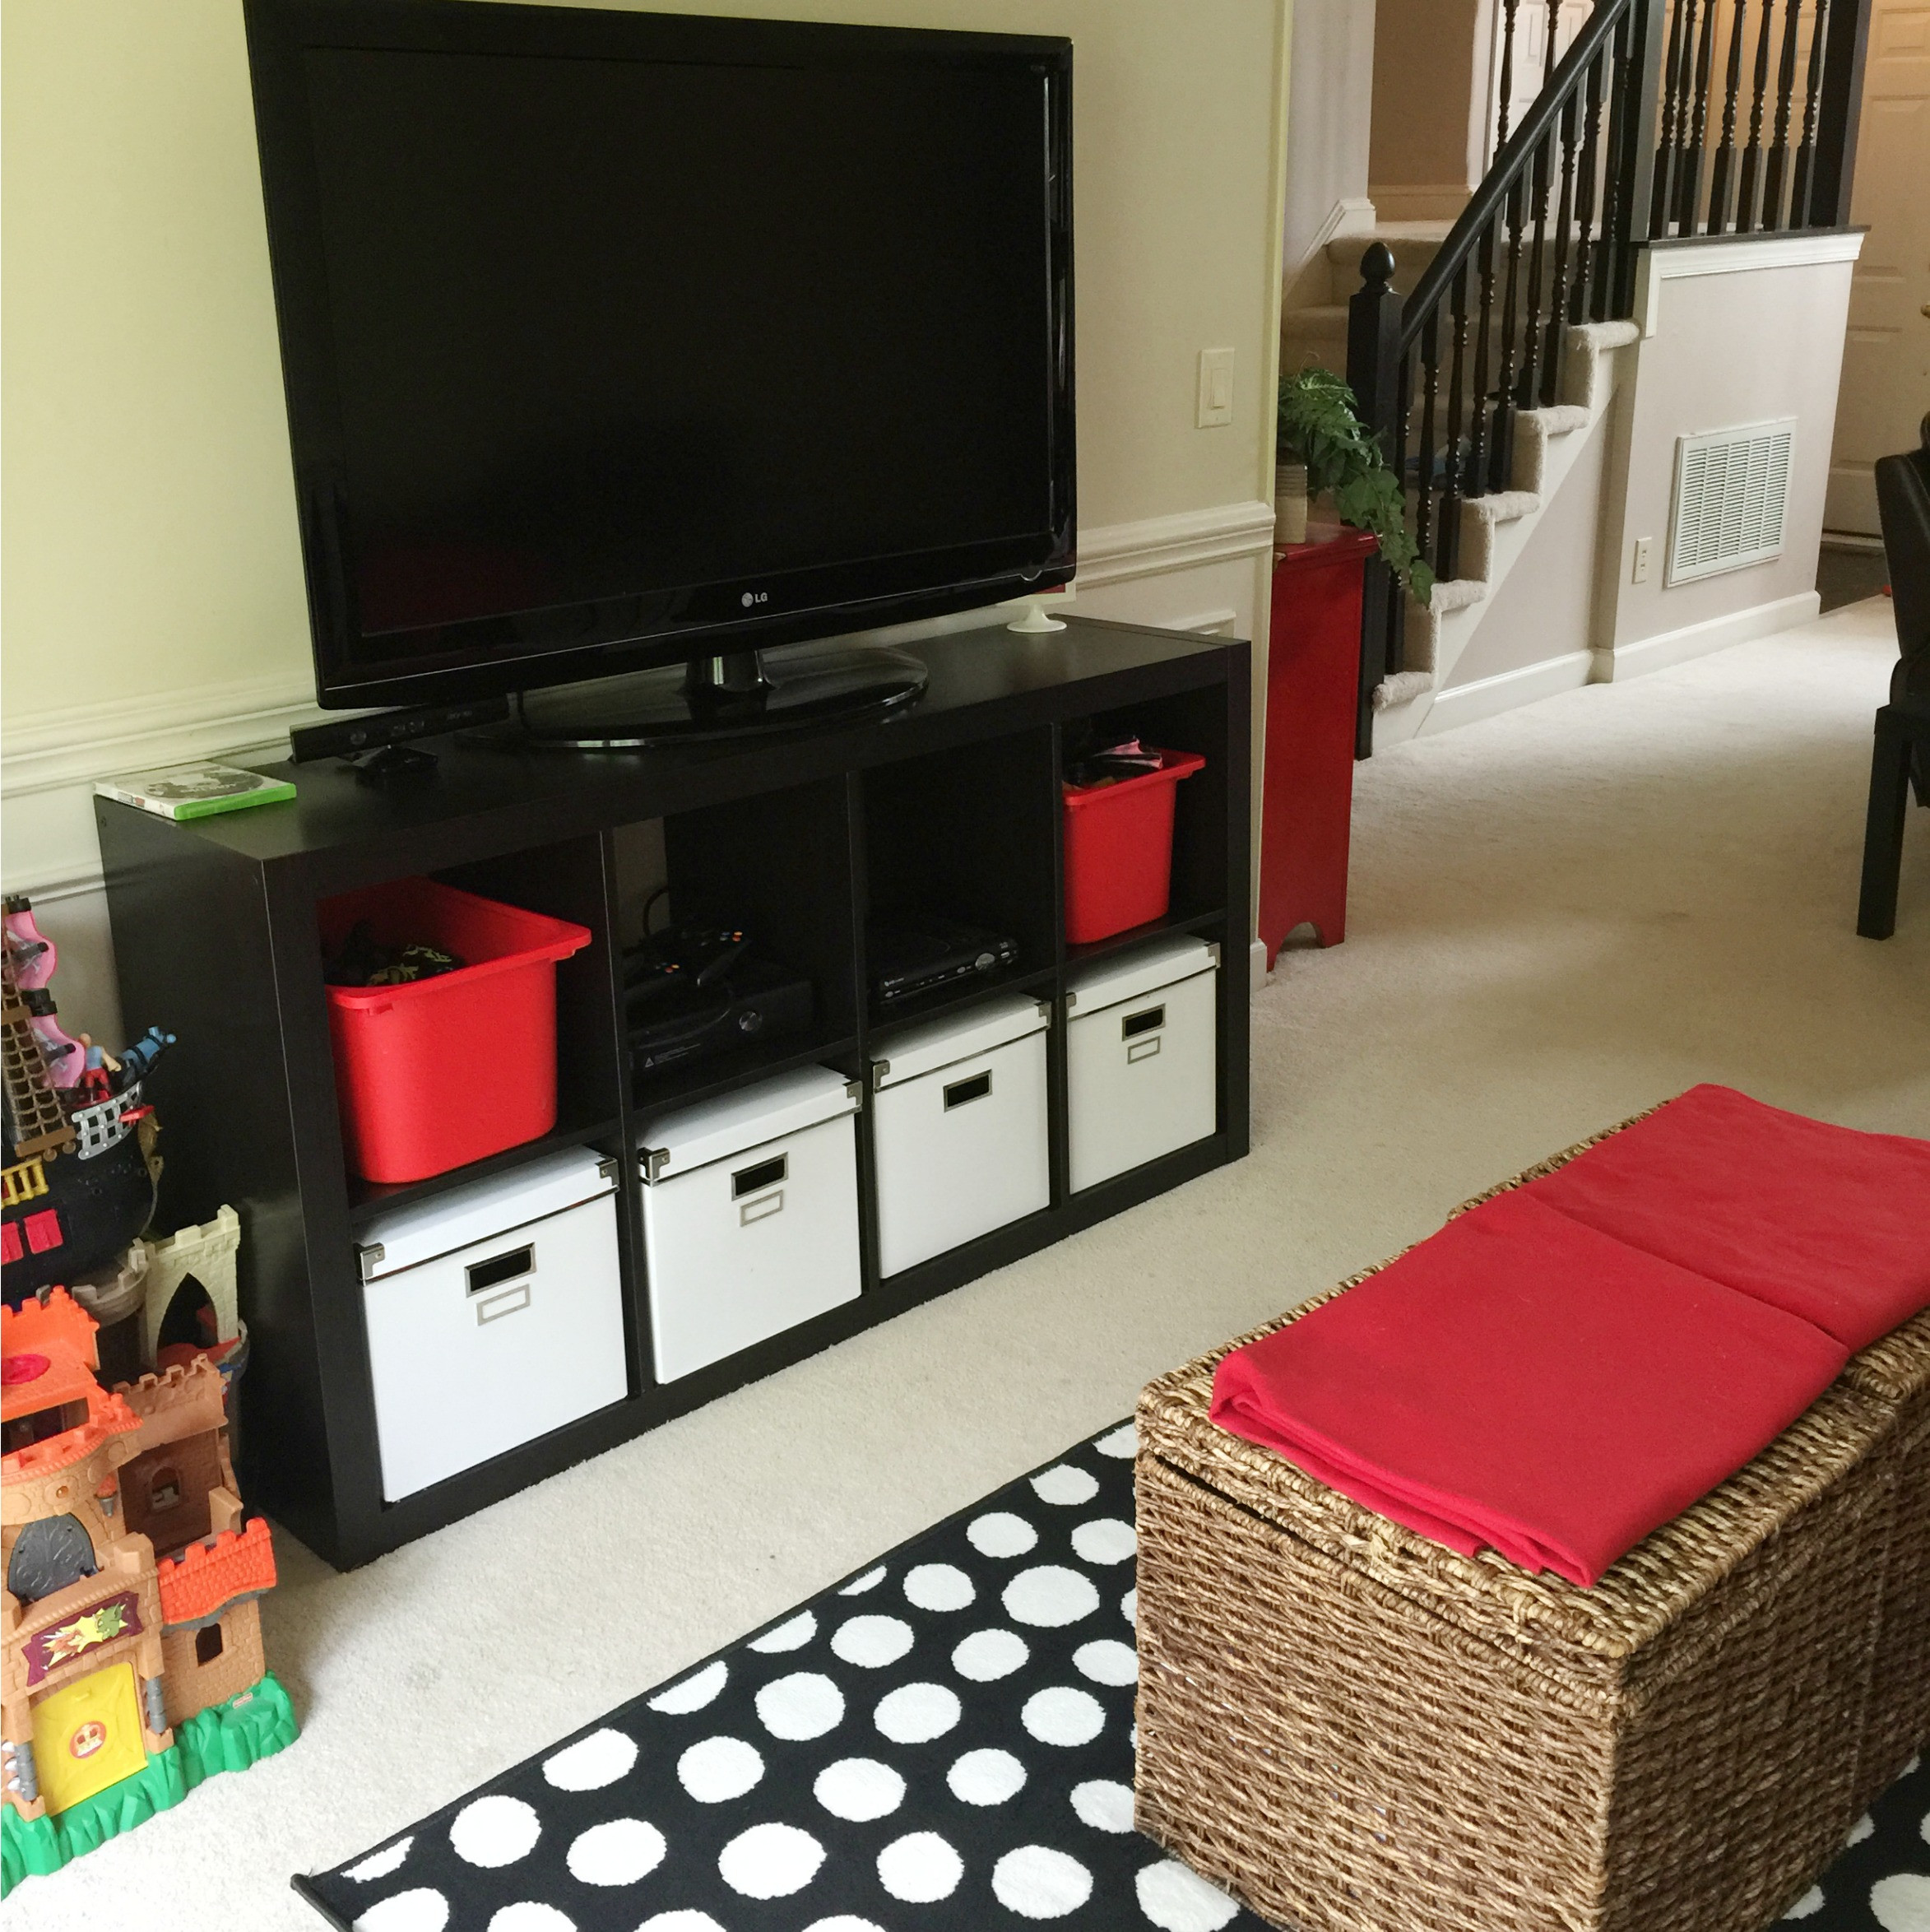 Best ideas about Tv Stand For Kids Room . Save or Pin Turning A Formal Dining Room Into A Kid's TV Space Now.